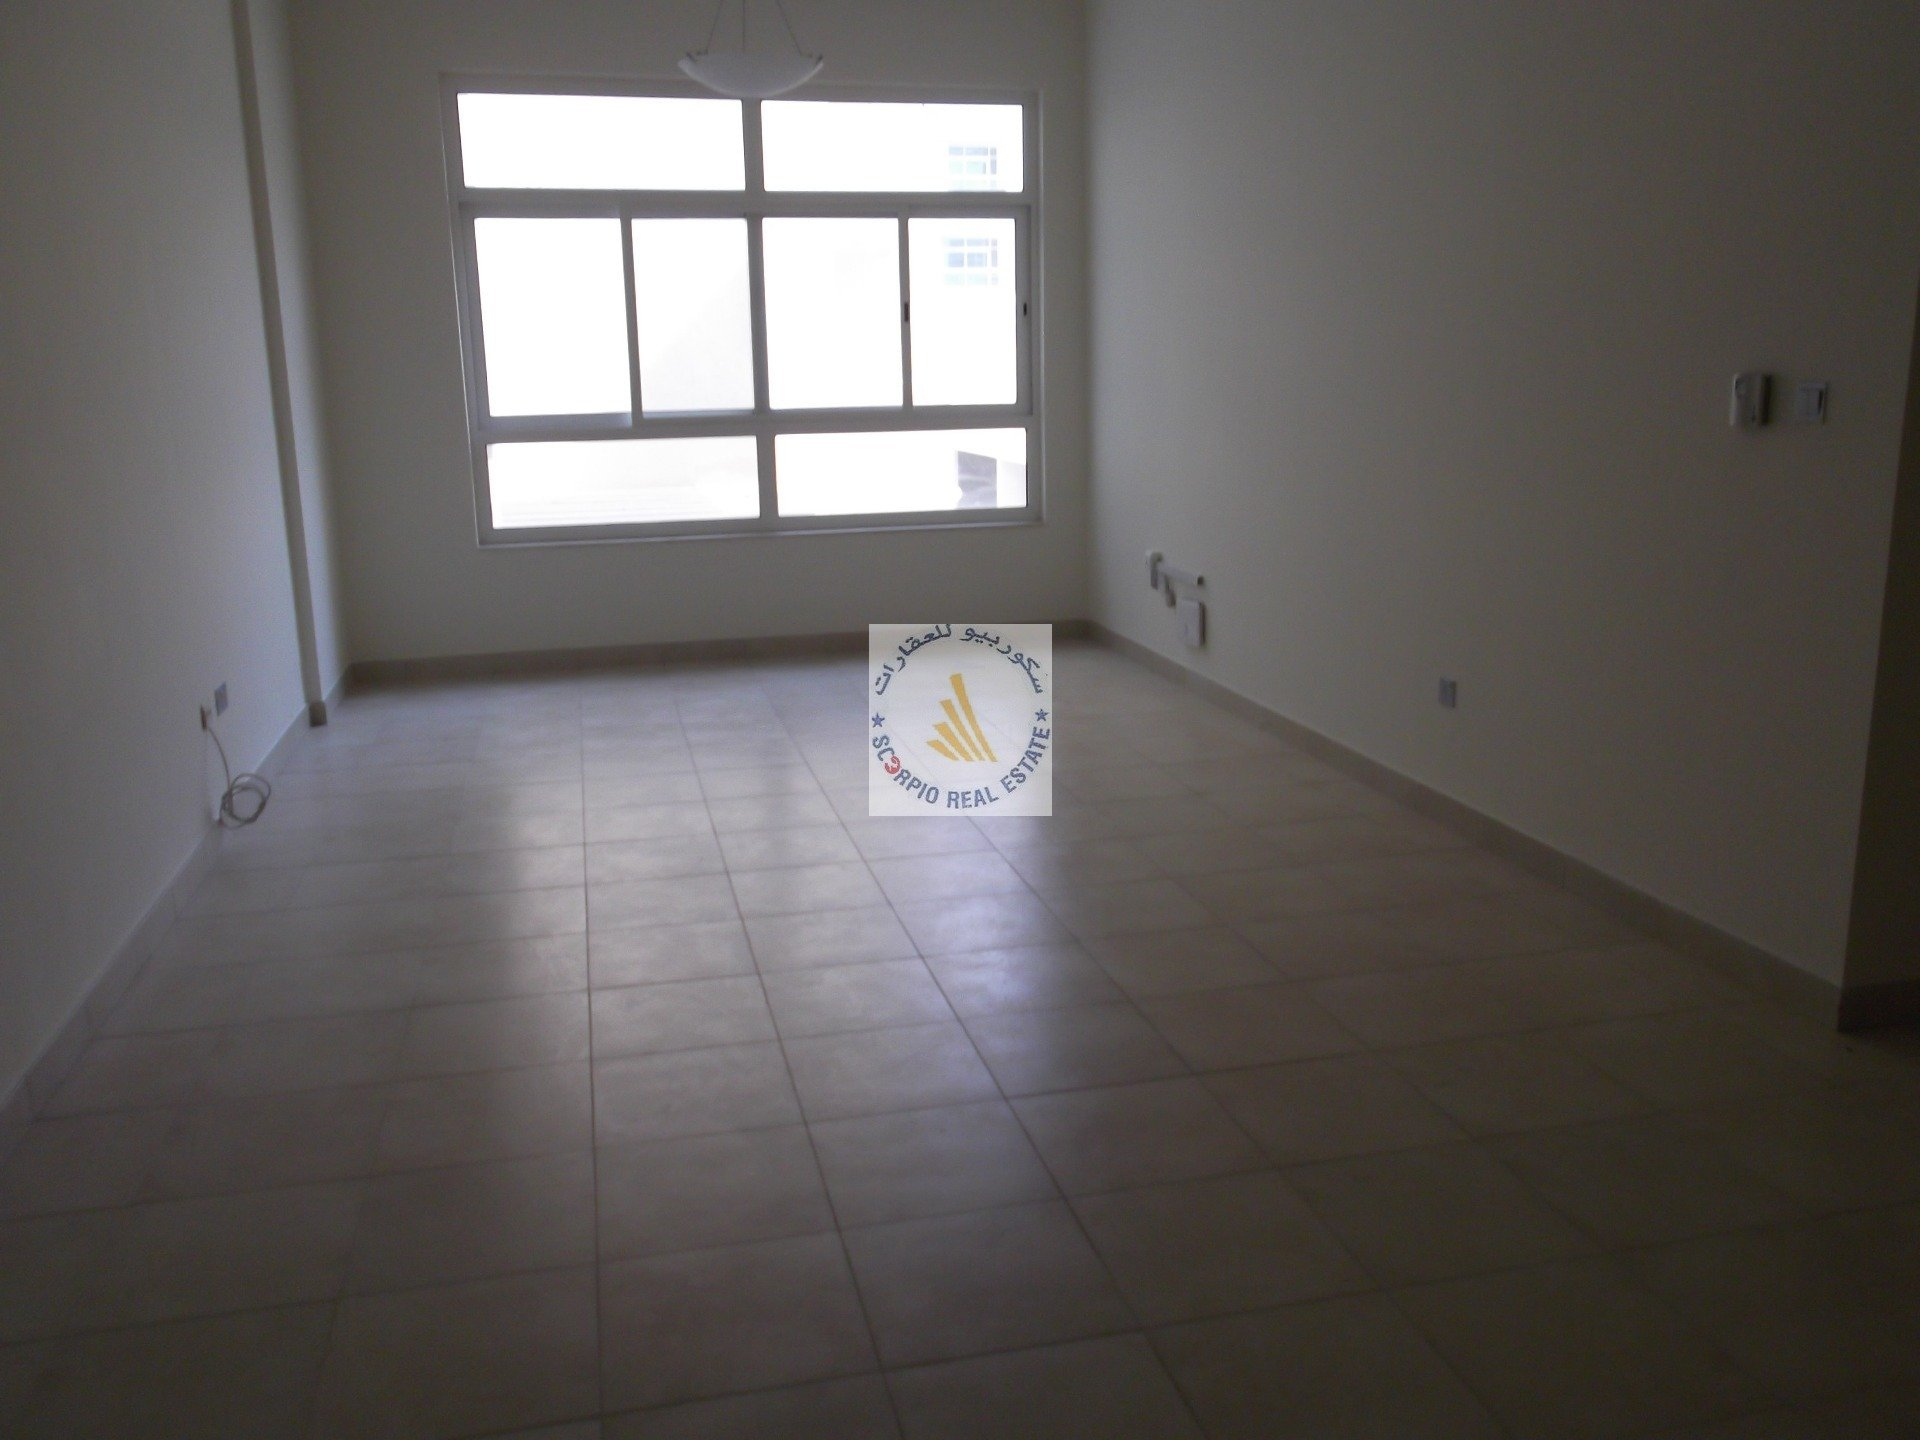 Scr p 123 one bedroom two bathroom apartment to rent - 1 bedroom apartments for rent in dubai ...